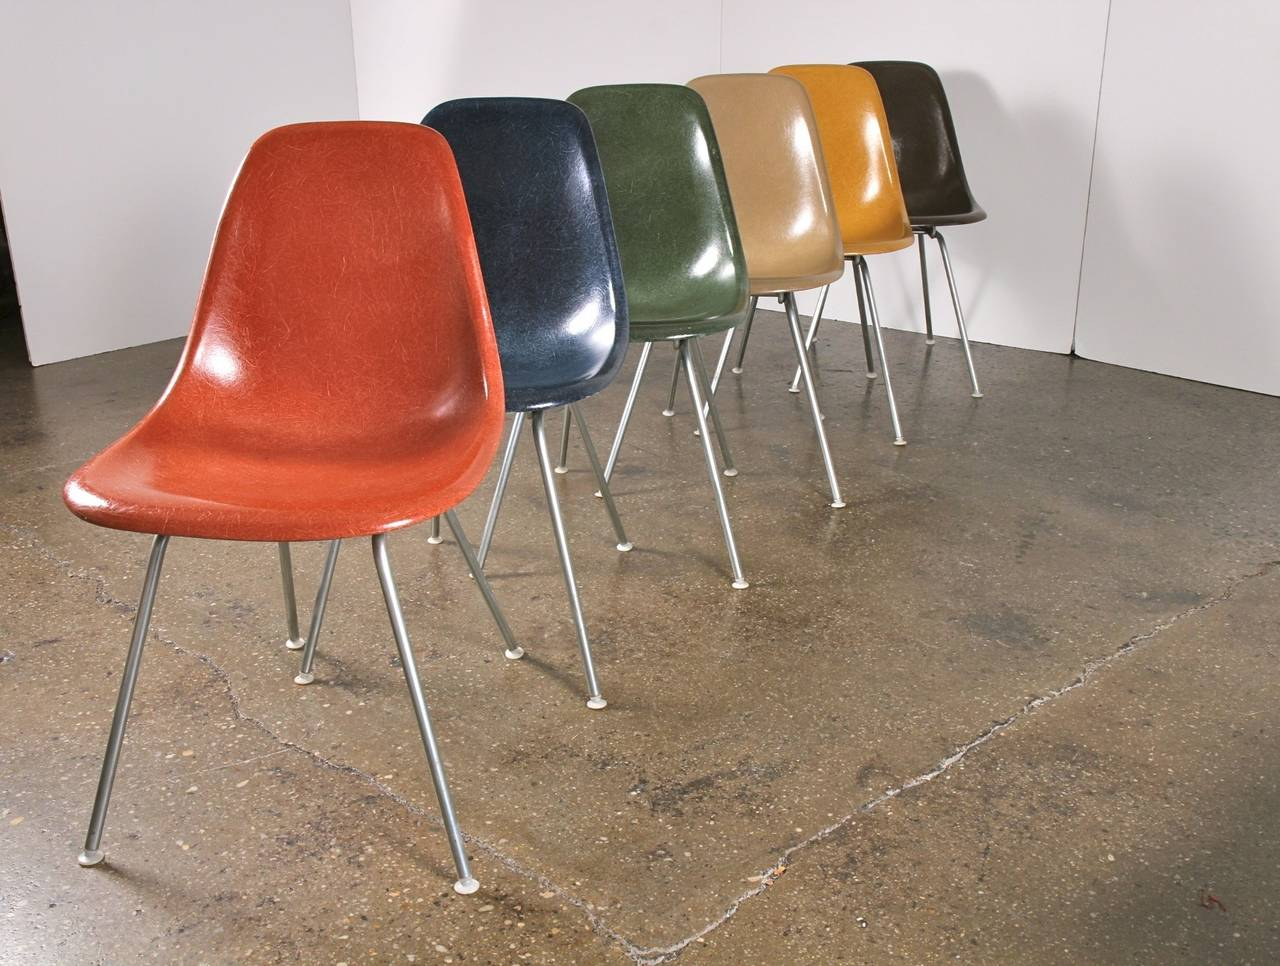 Vintage 1960s molded fiberglass side shell chairs designed by Charles and Ray Eames for Herman Miller. Gleaming shells are in original condition, each with a distinct thready texture. We have many colorways in stock, including Ochre Light Yellow,